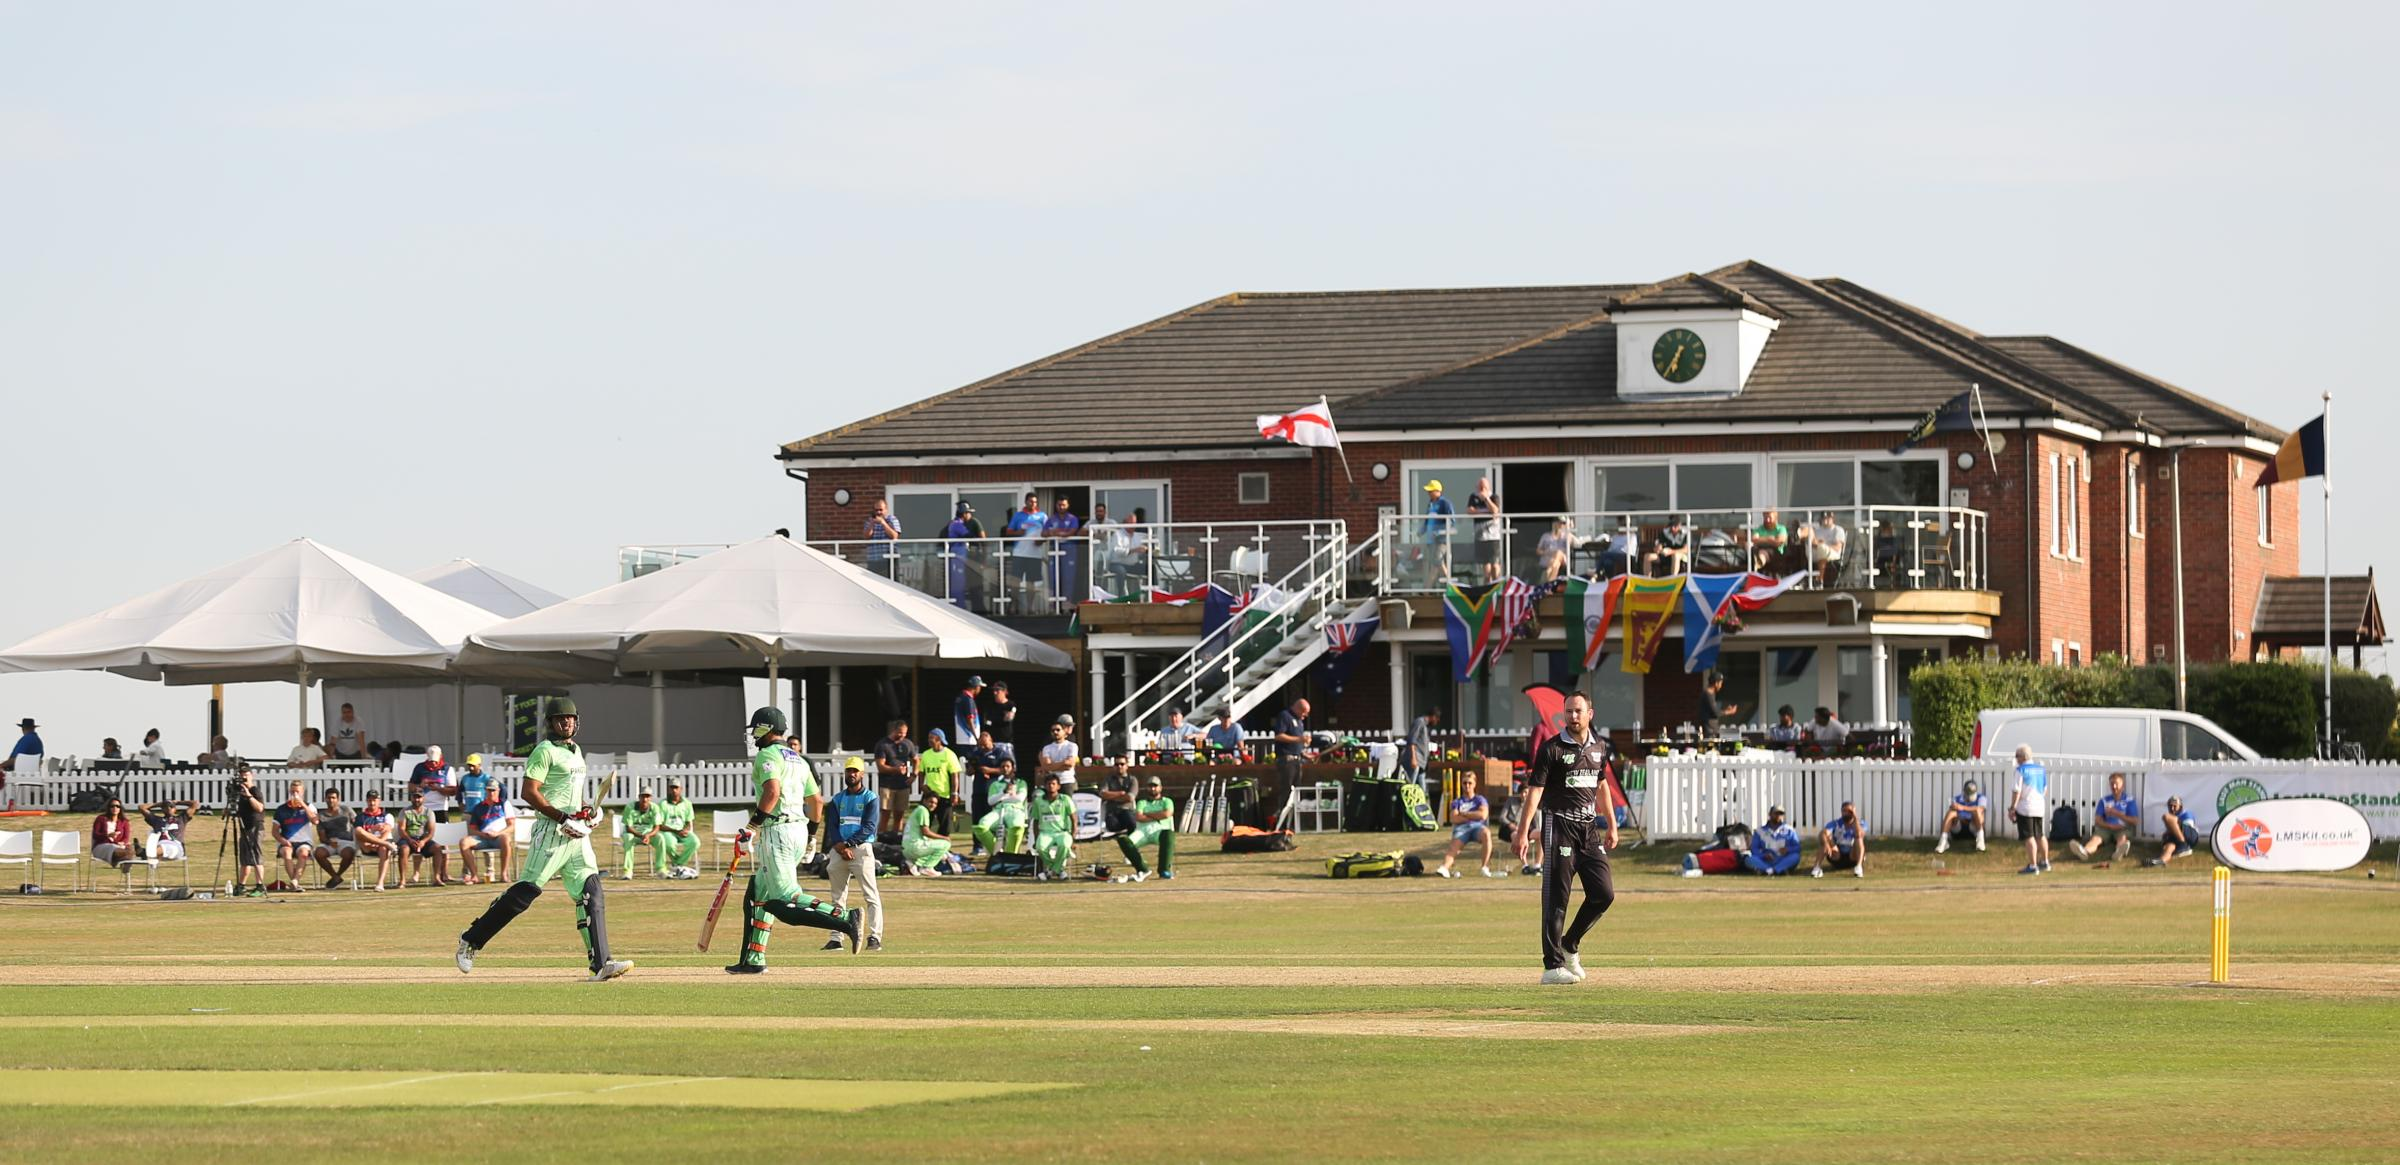 Chester Boughton Hall Cricket Club host the LMS World Series. Pic: Pakistan bat against New Zealand  GA070818A.